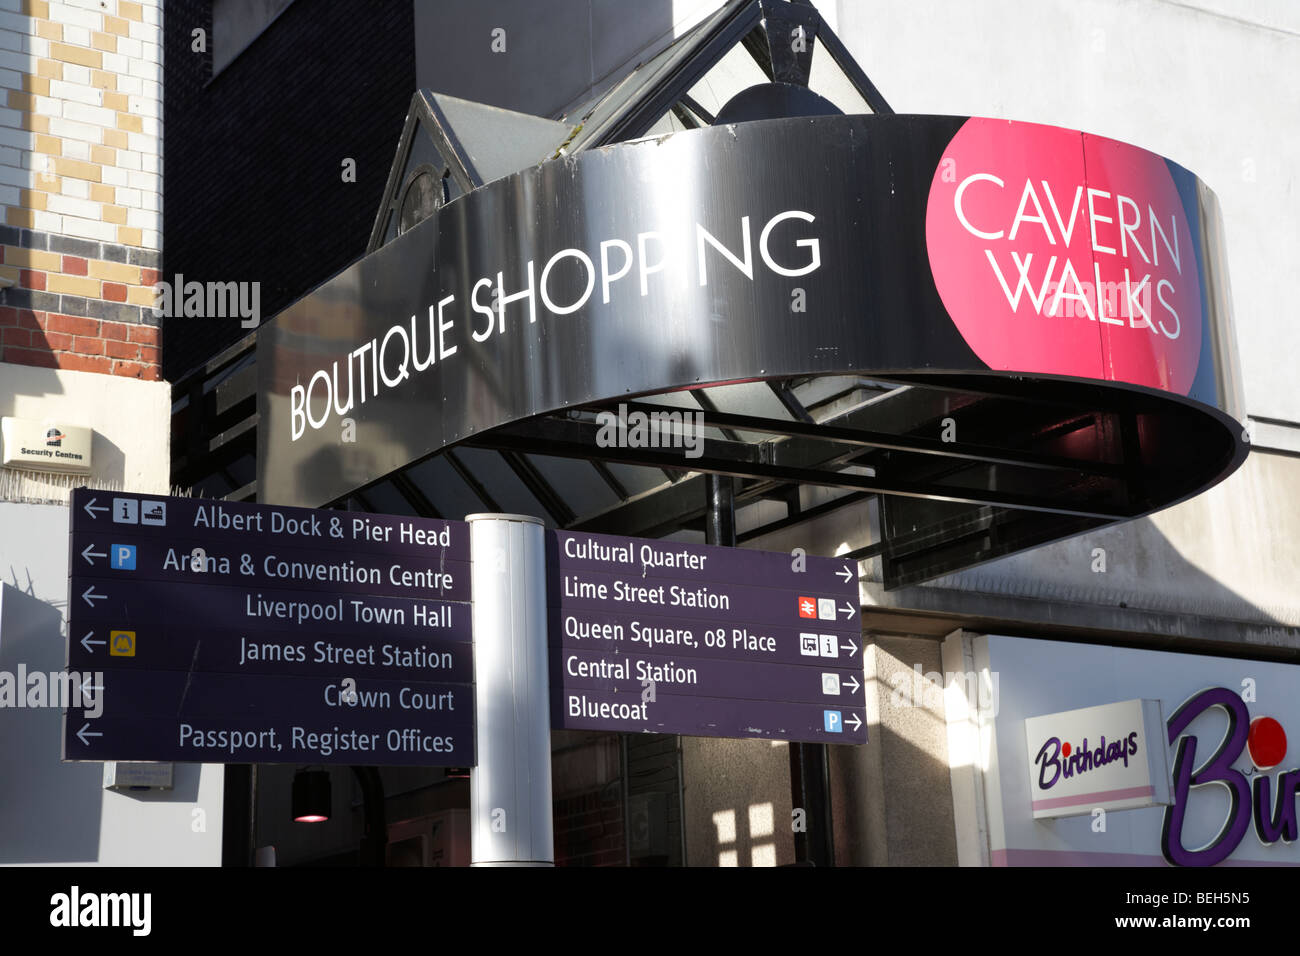 Cavern walks shopping centre